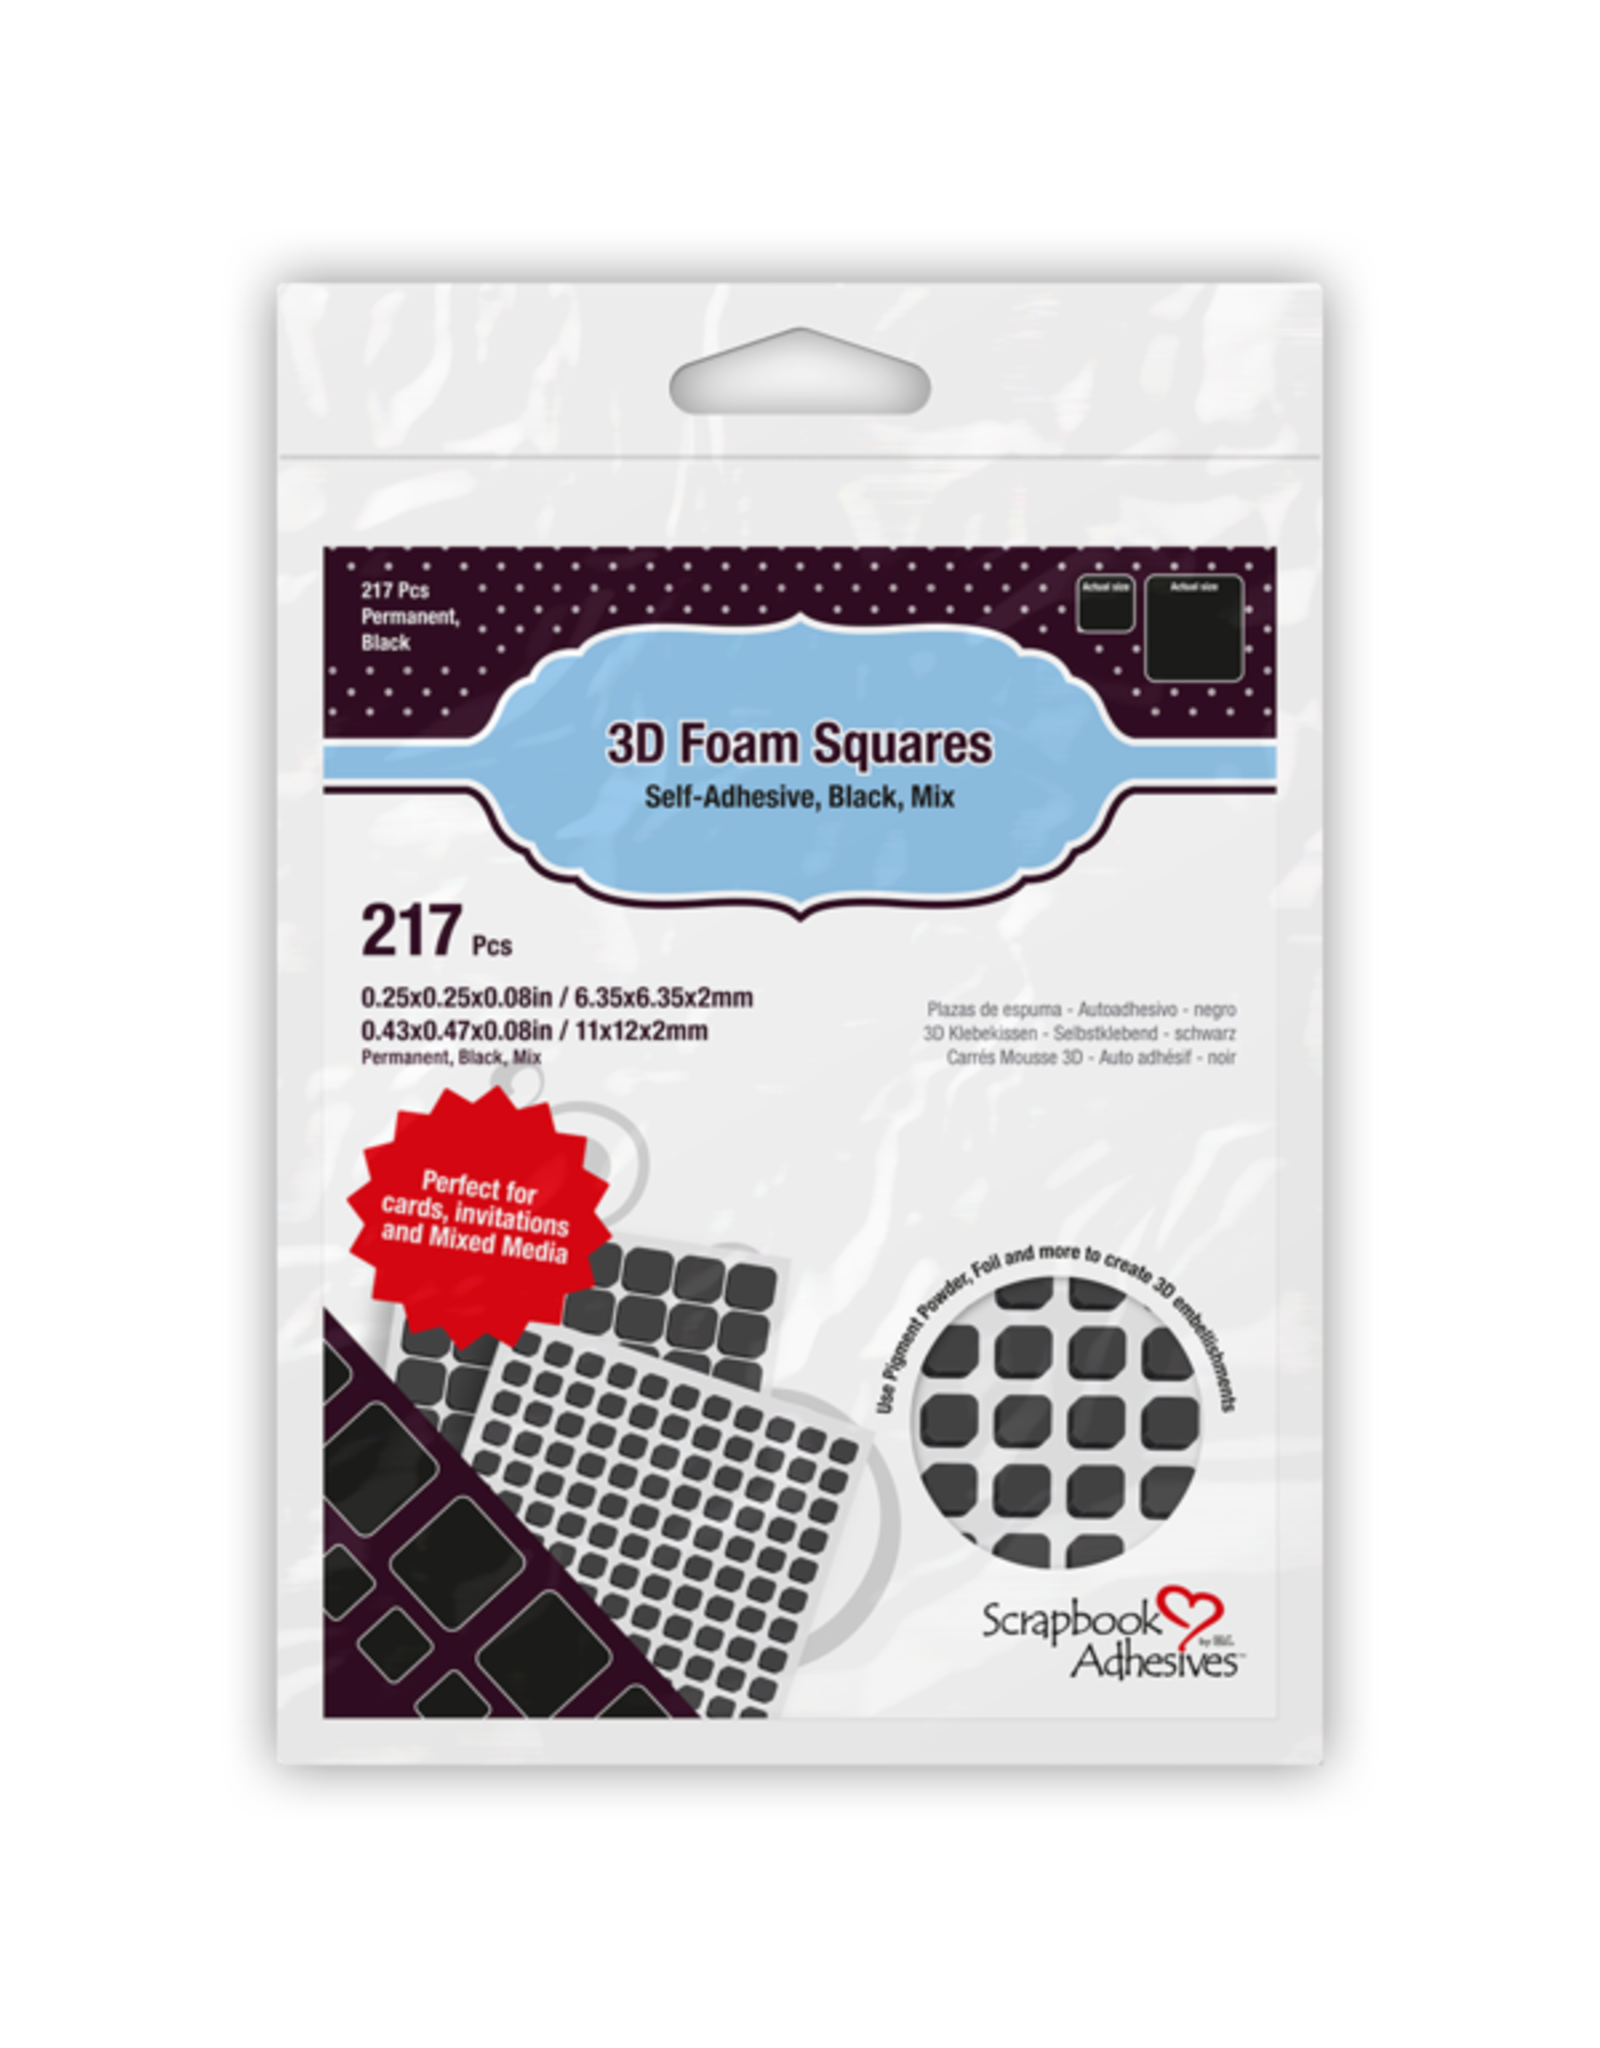 Scrapbook Adhesives 3D Foam Squares Black - Assorted